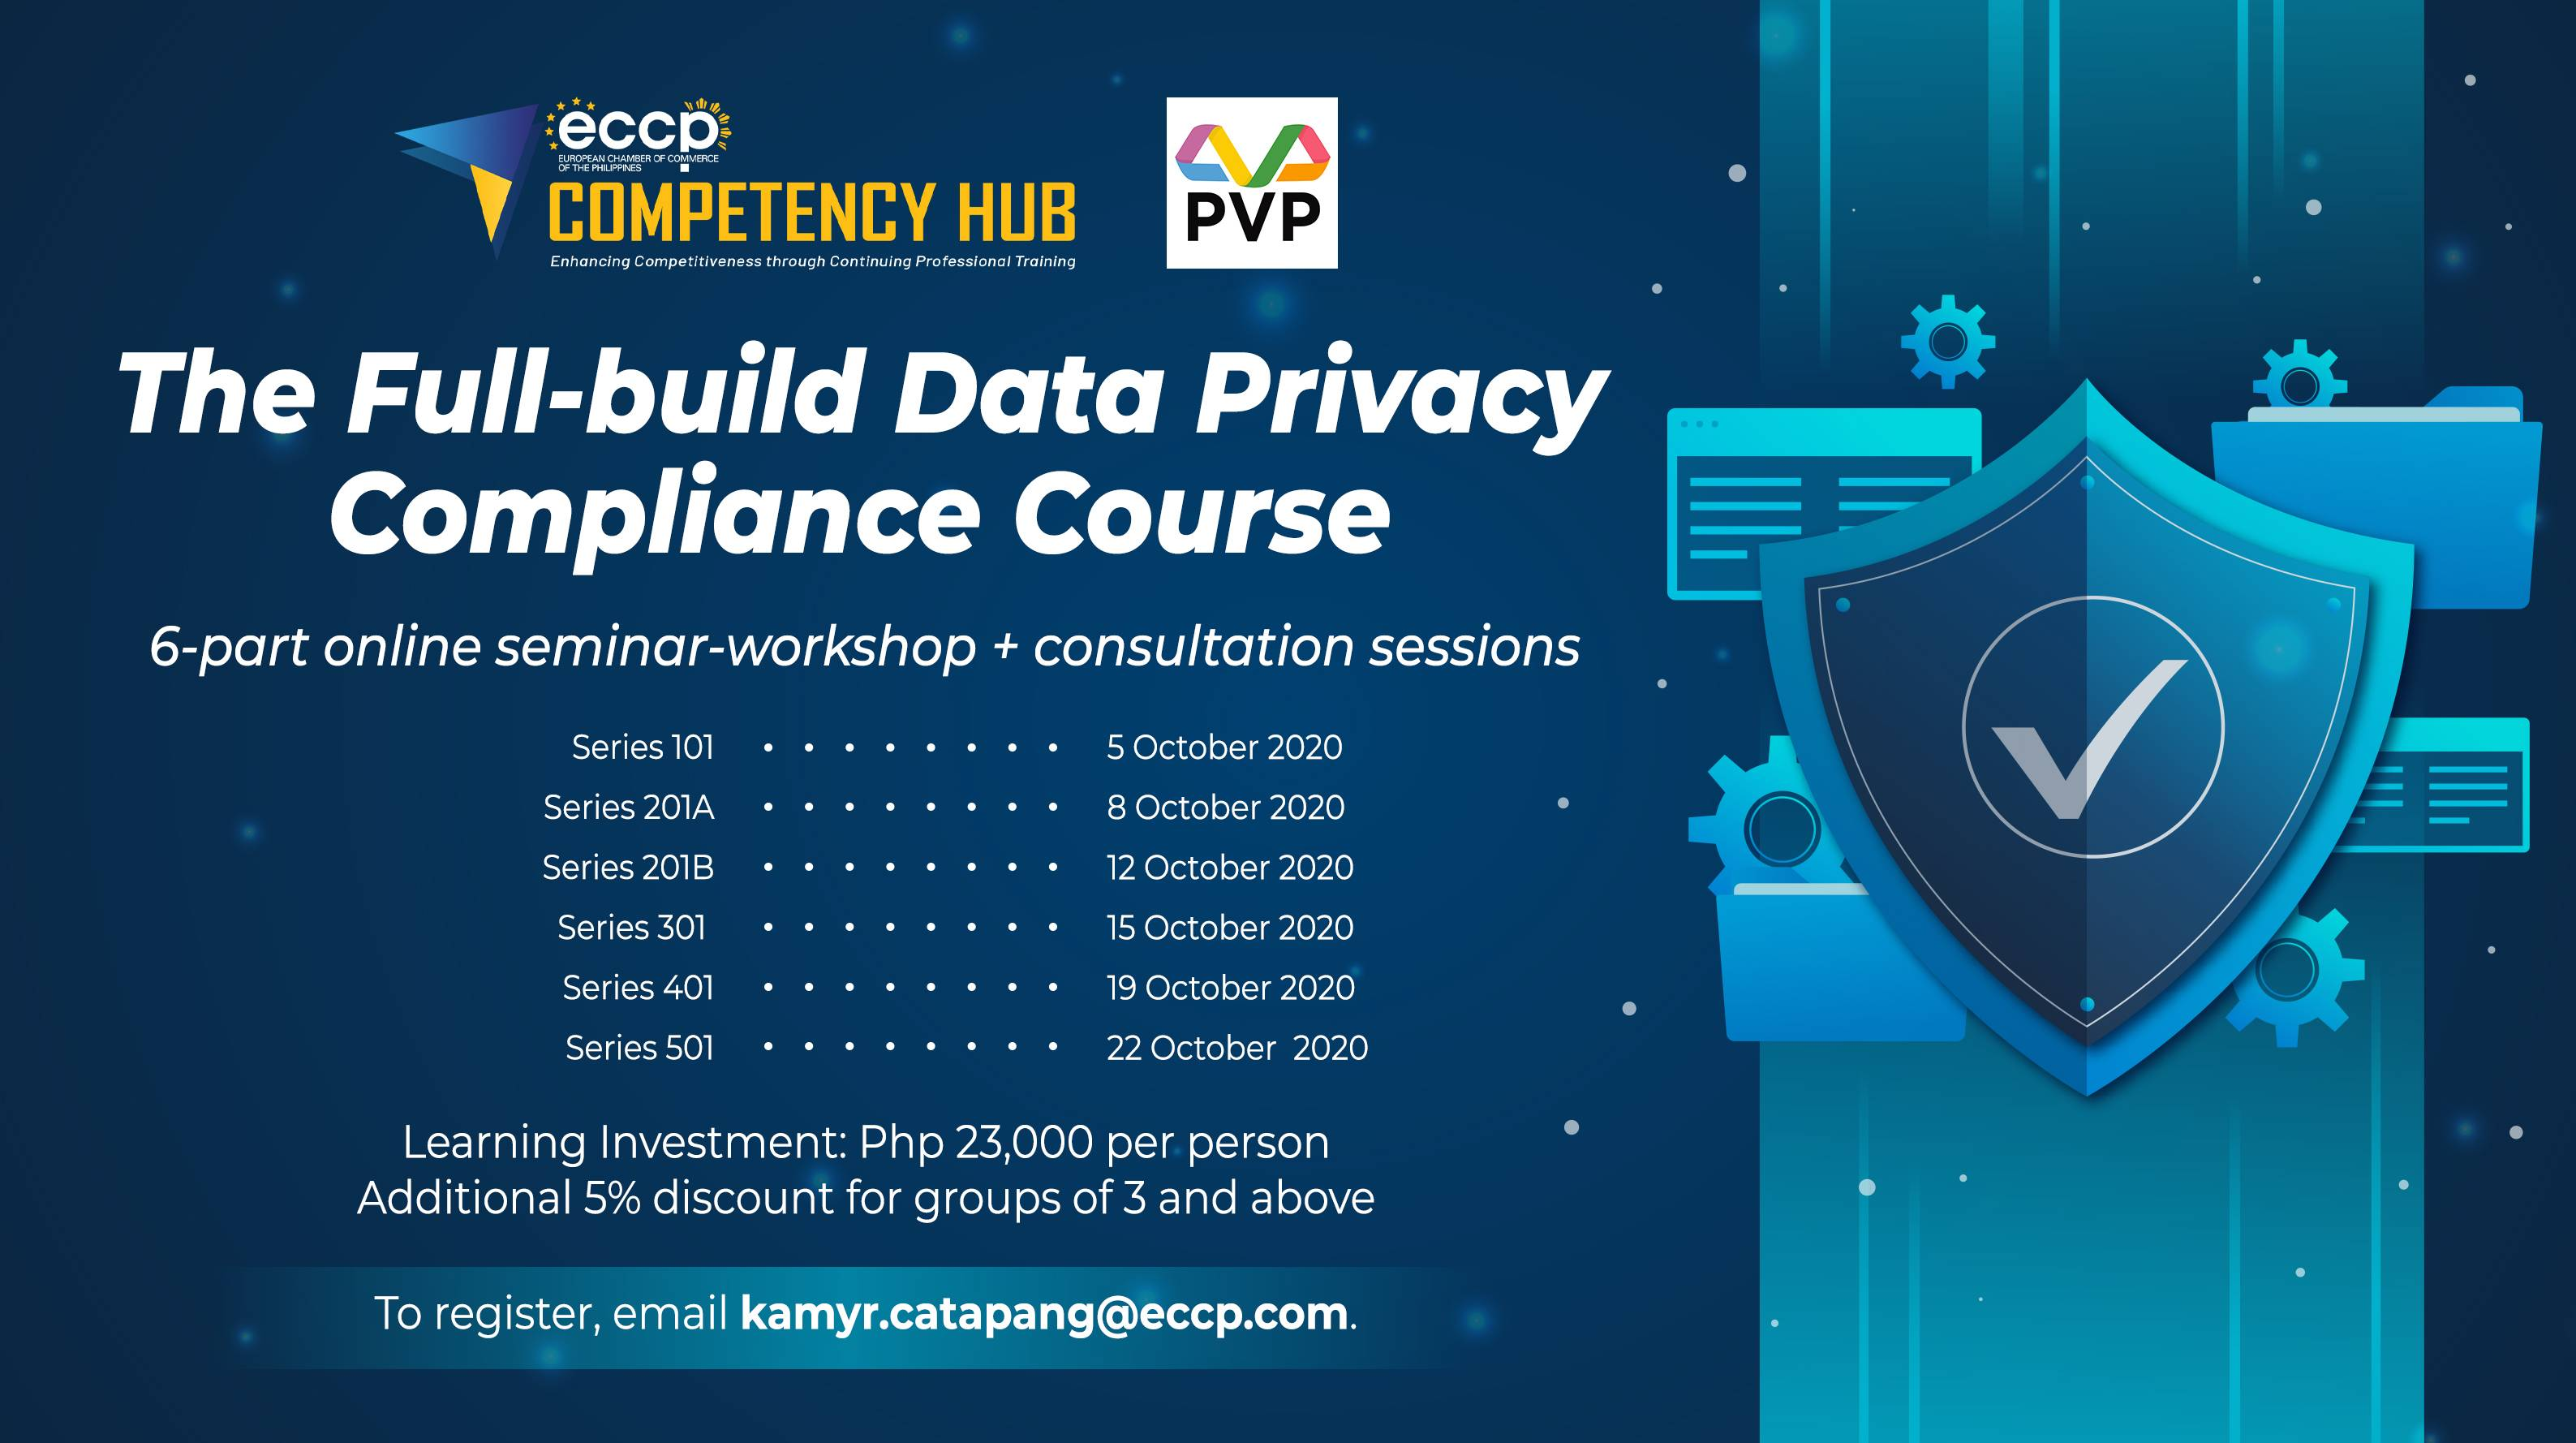 The Full-build Data Privacy Compliance Course